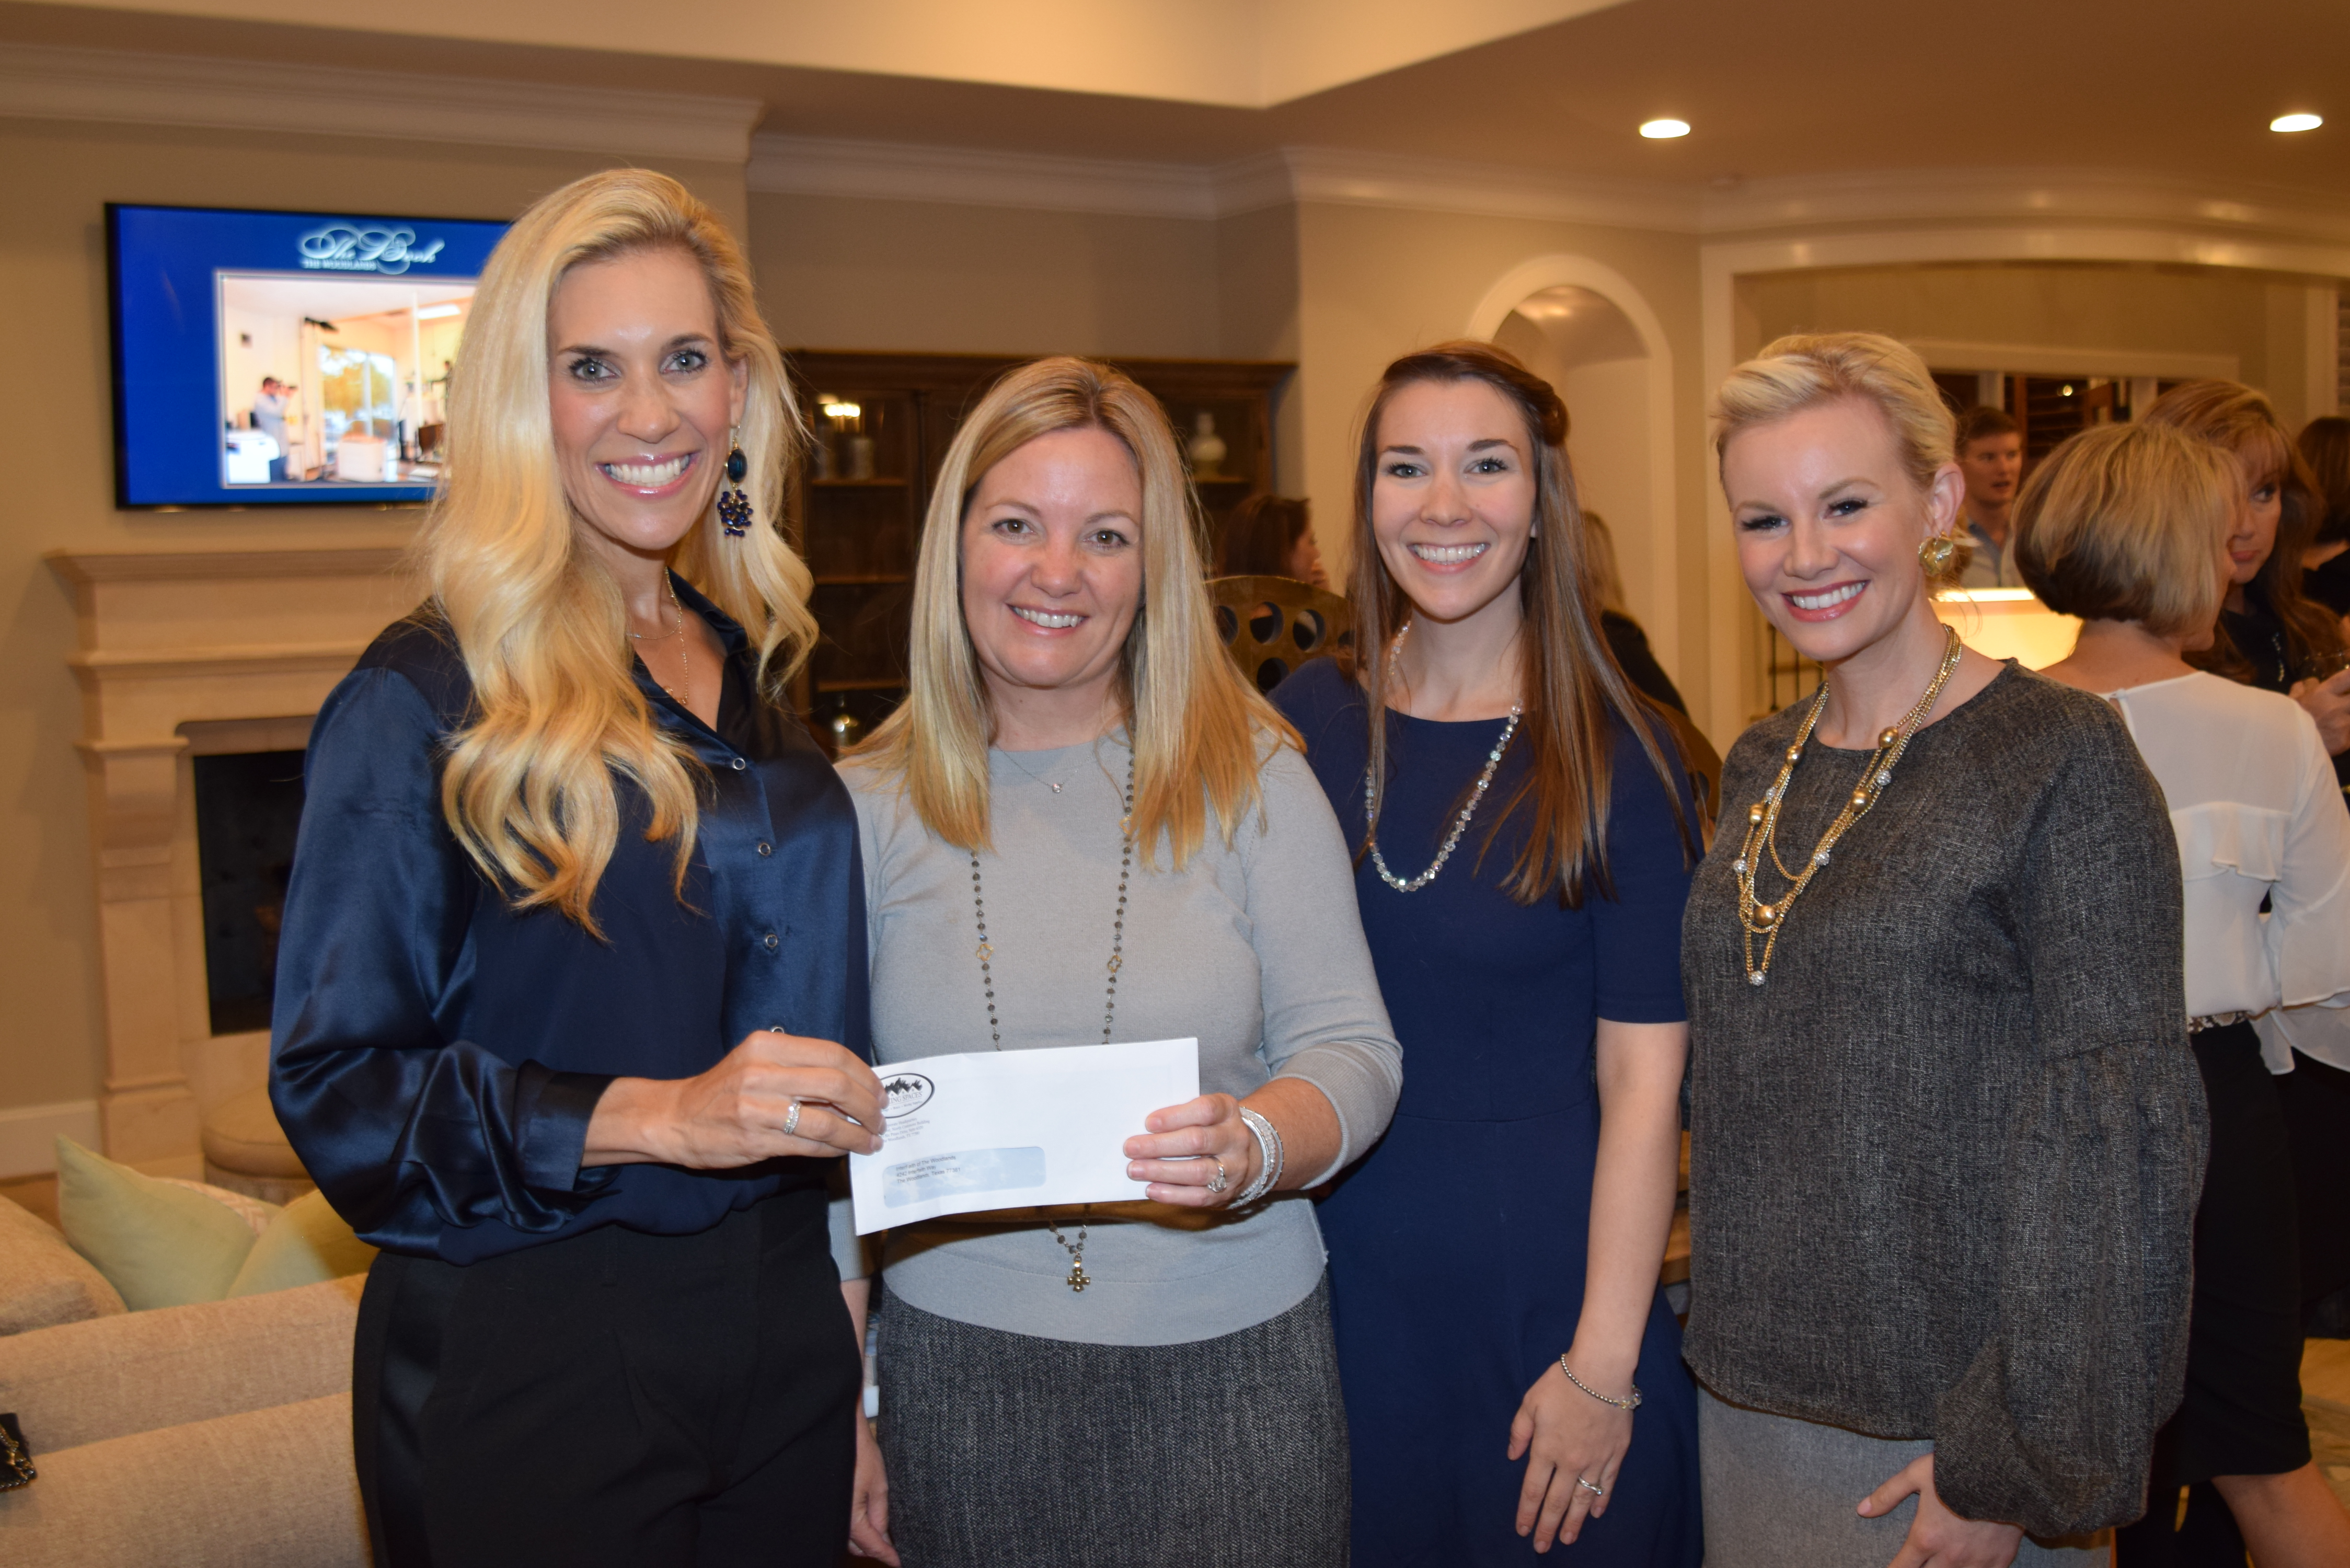 Amazing Spaces presents check to Interfaith of The Woodlands